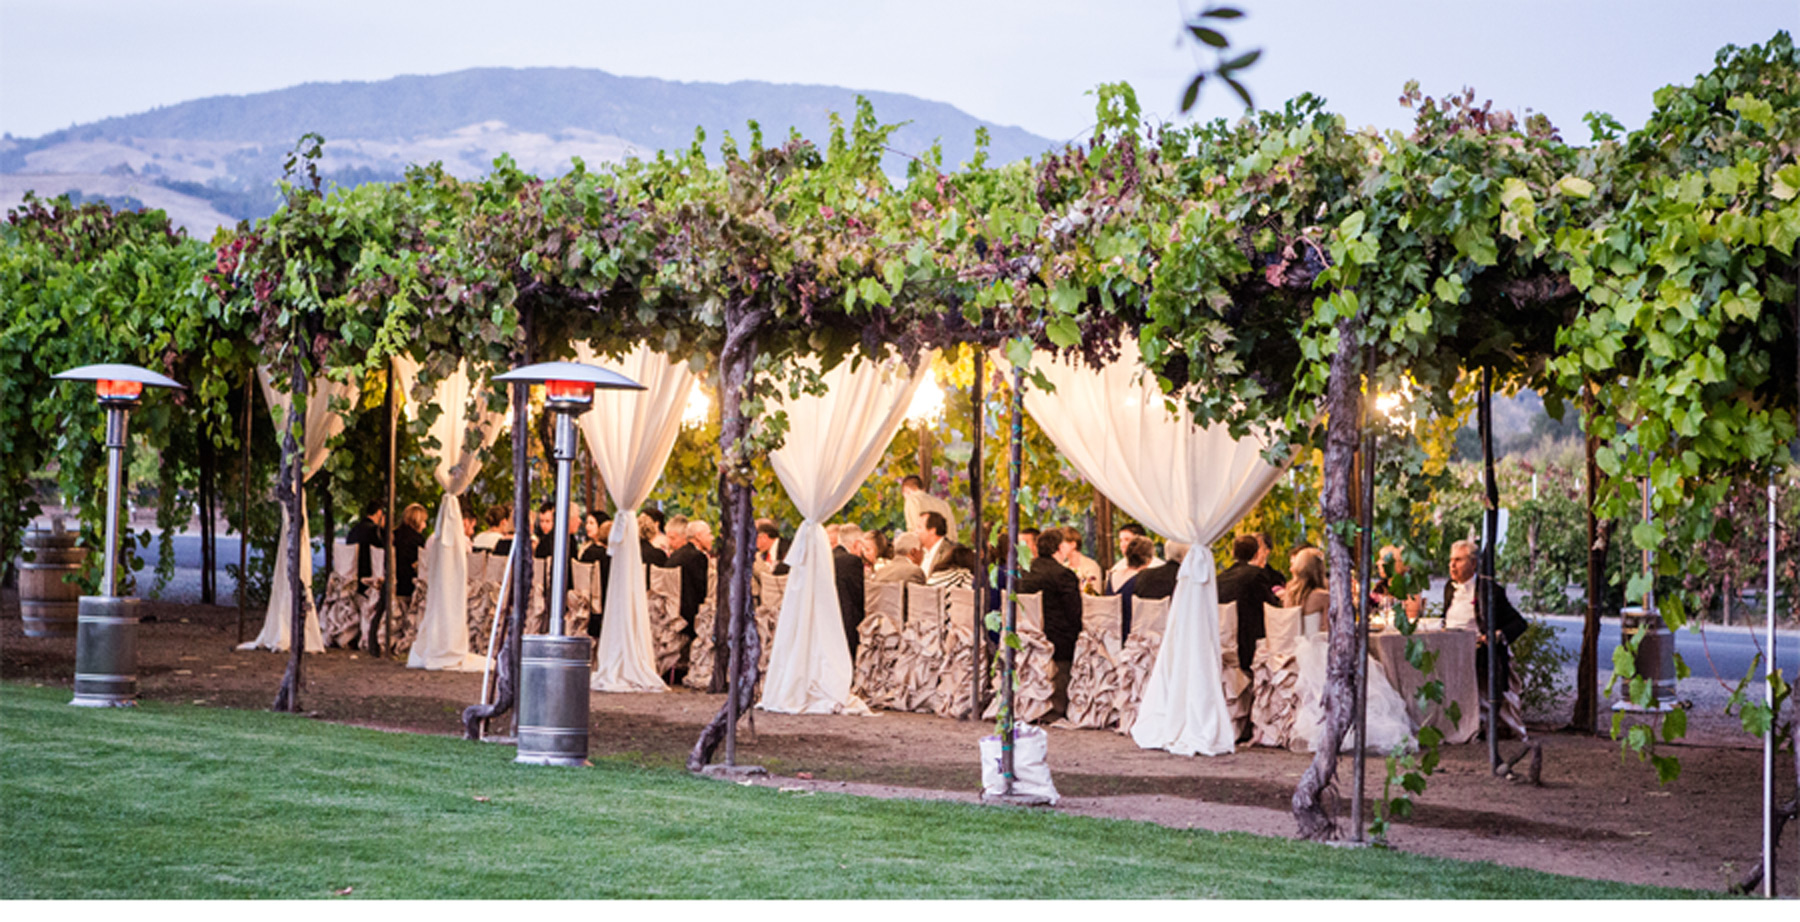 Italian Vineyard Wedding Wedding In A Vineyard Italy